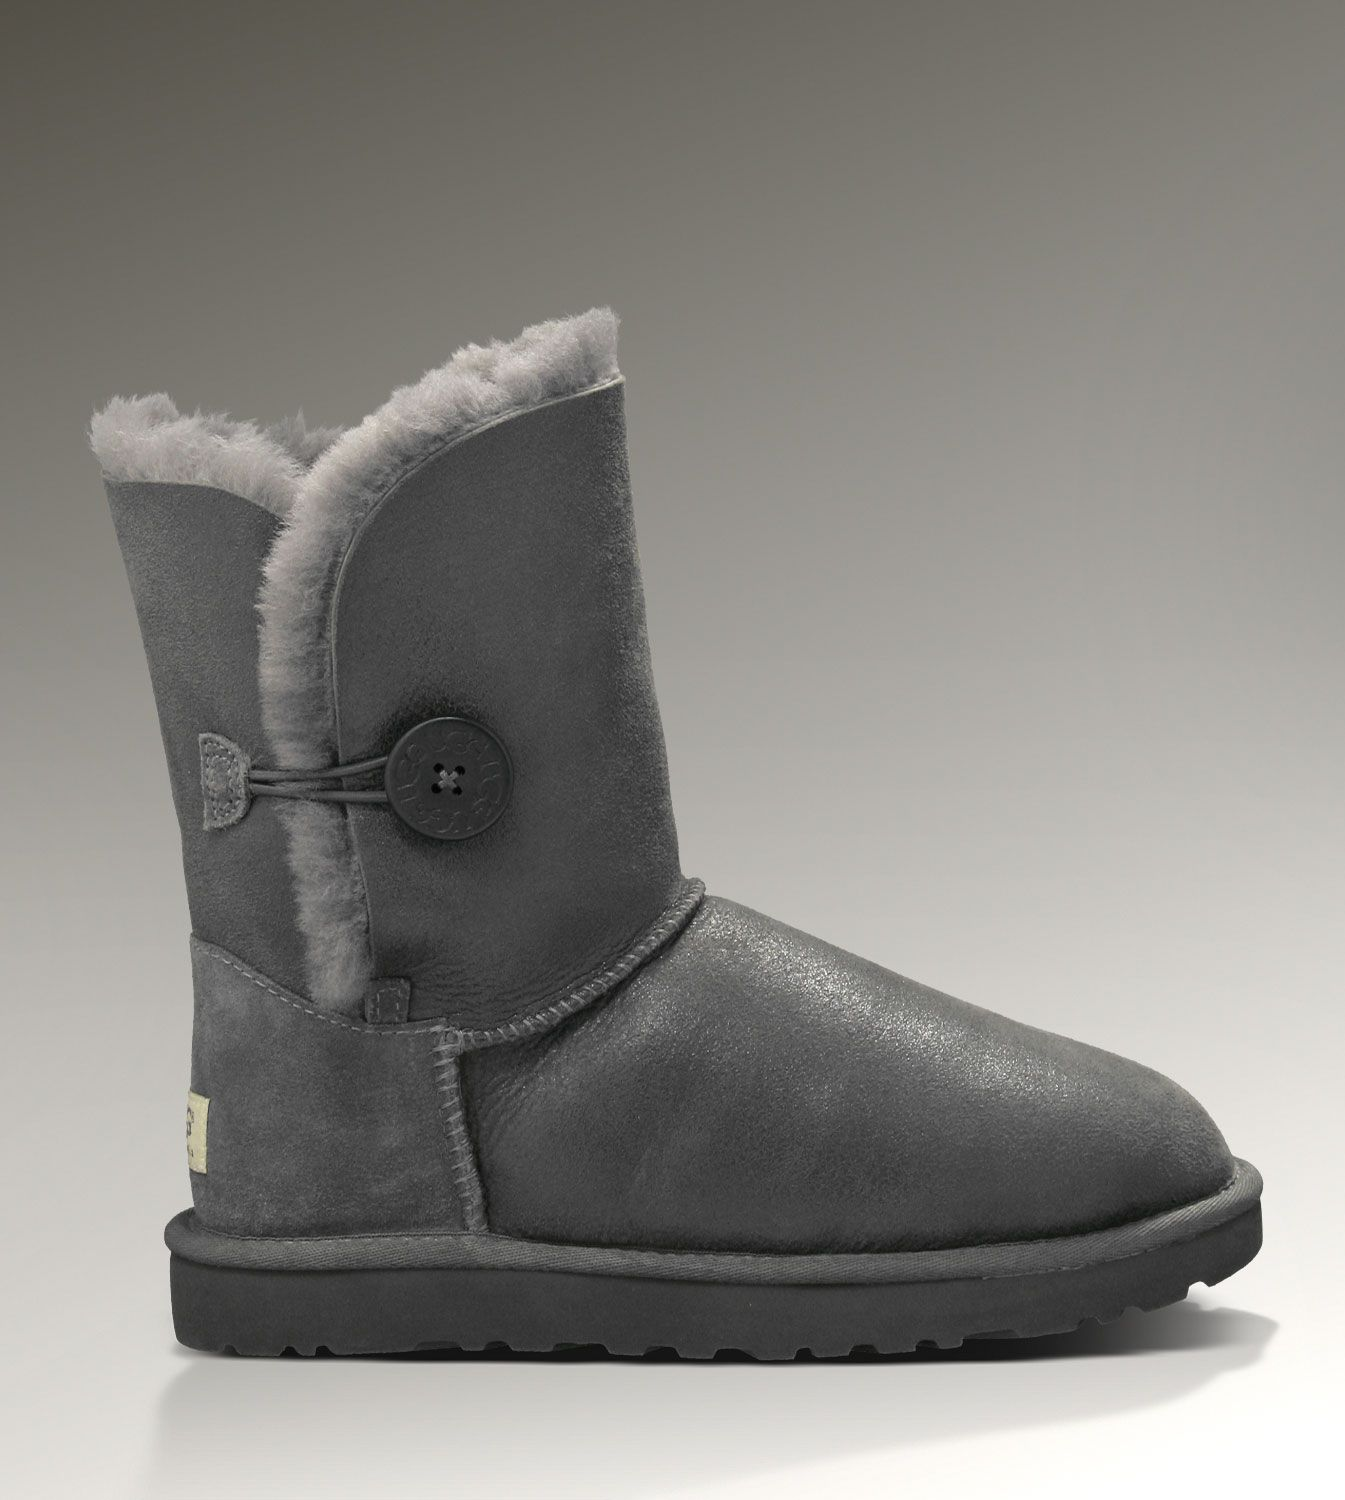 Bailey Bomber Button Women Ugg Jacket 5838 Grey Boots zq5x17pn